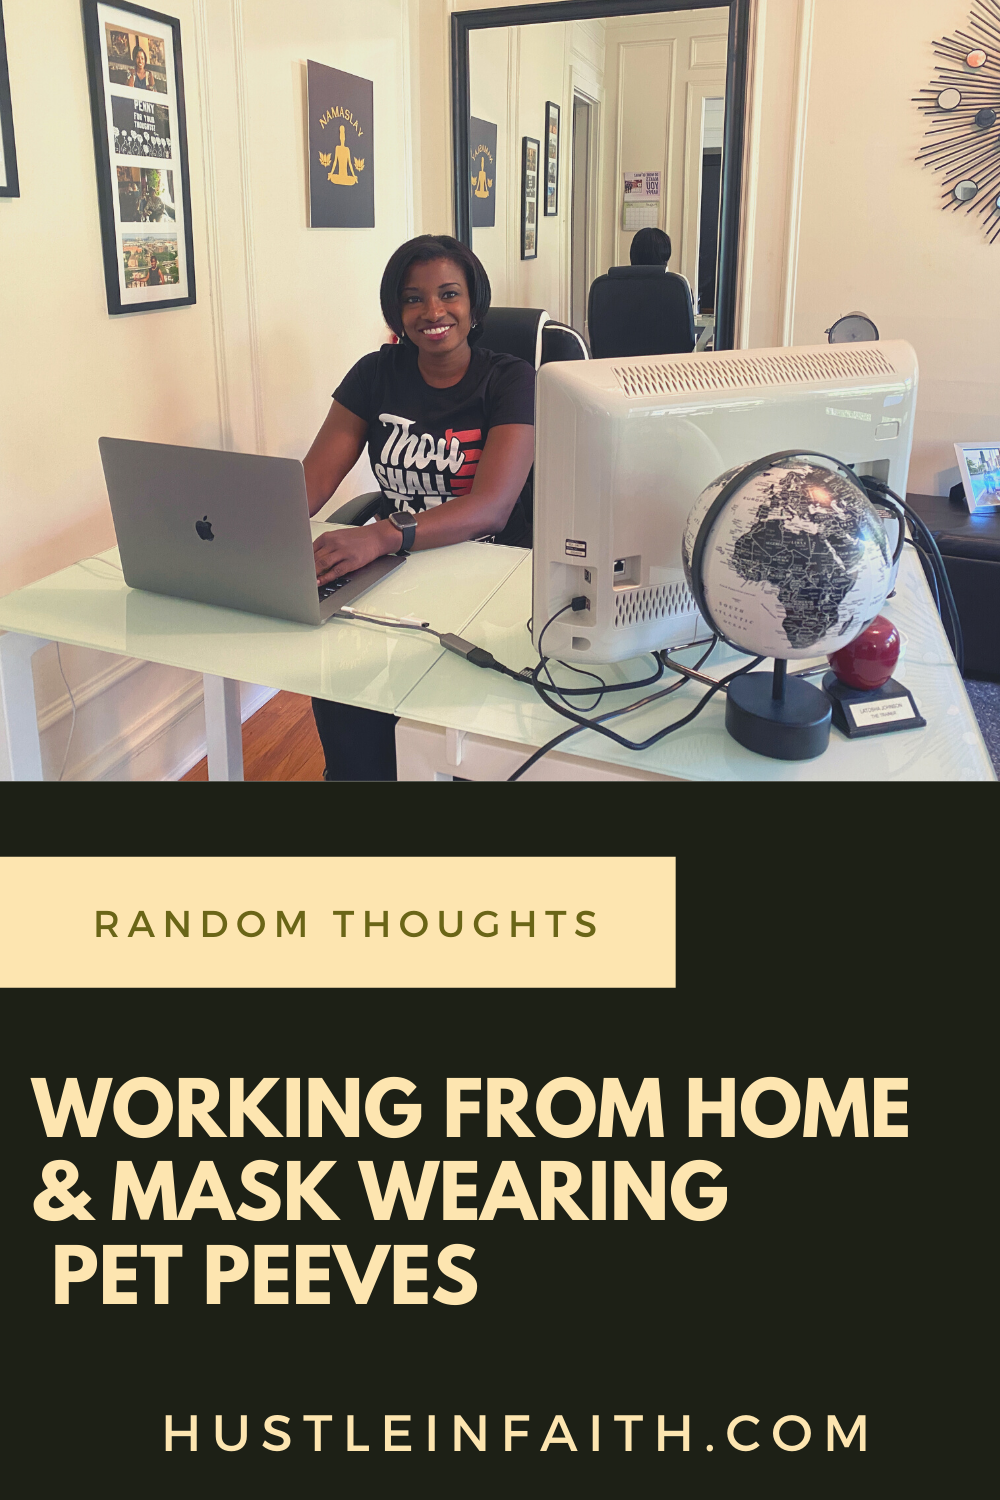 Working from home and mask wearing pet peeves